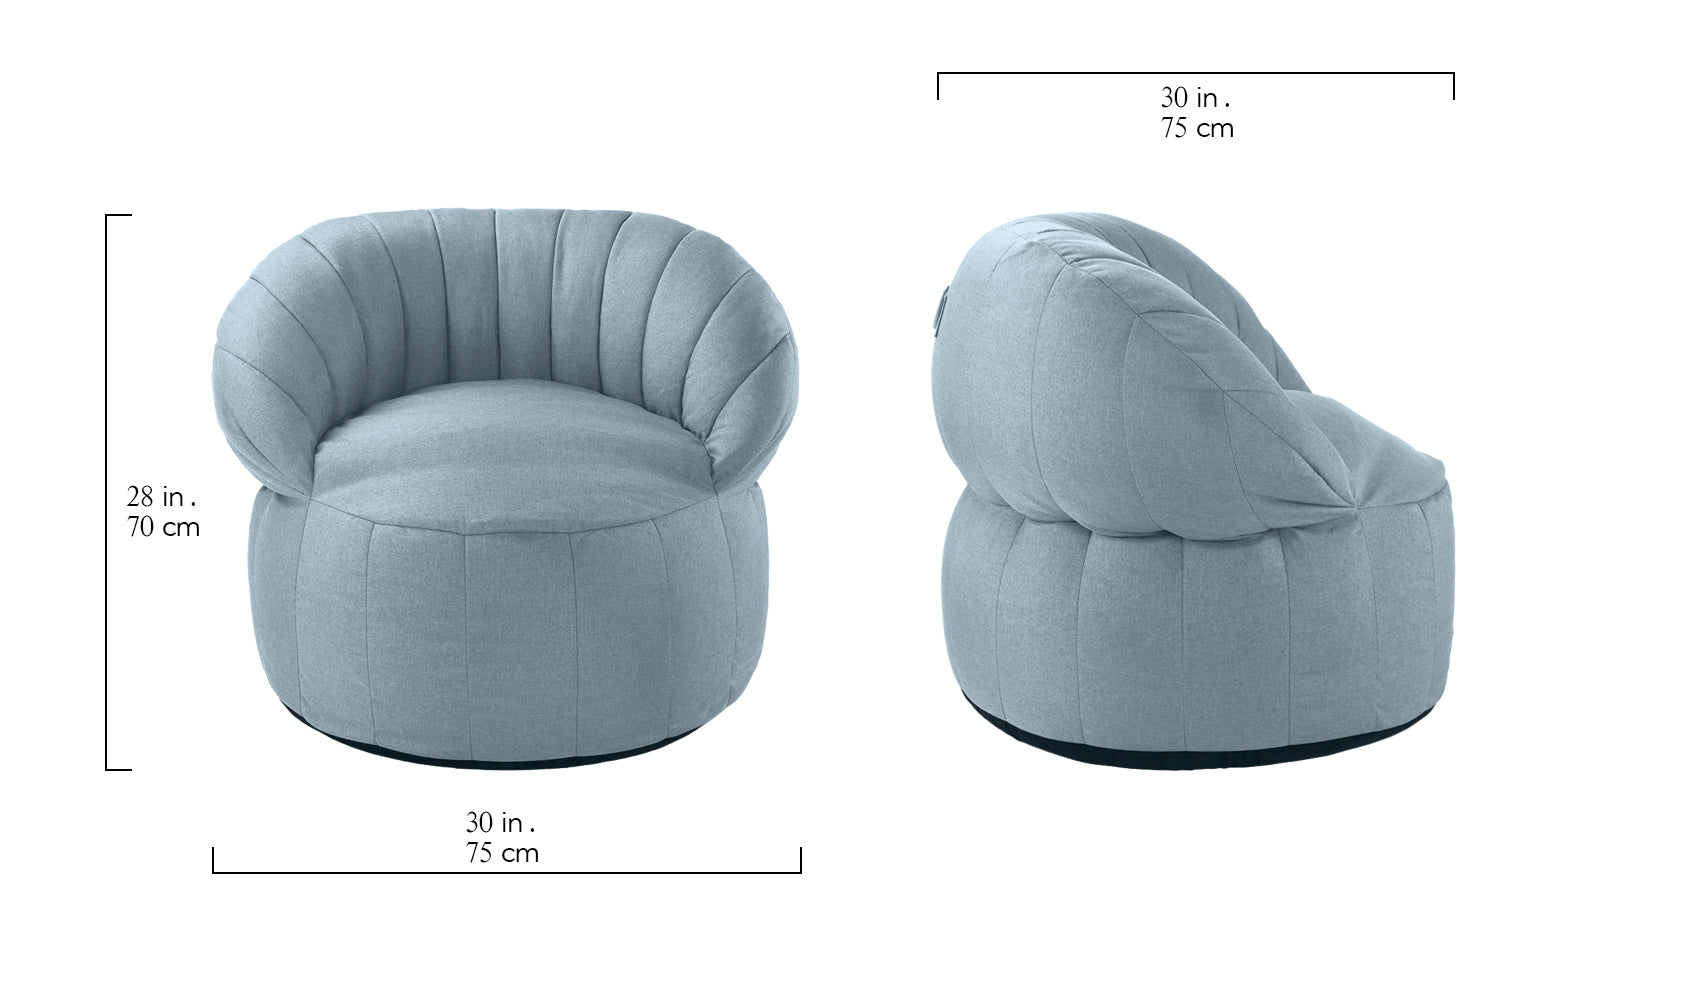 Quinn Large Bean Bag Chair With Backrest